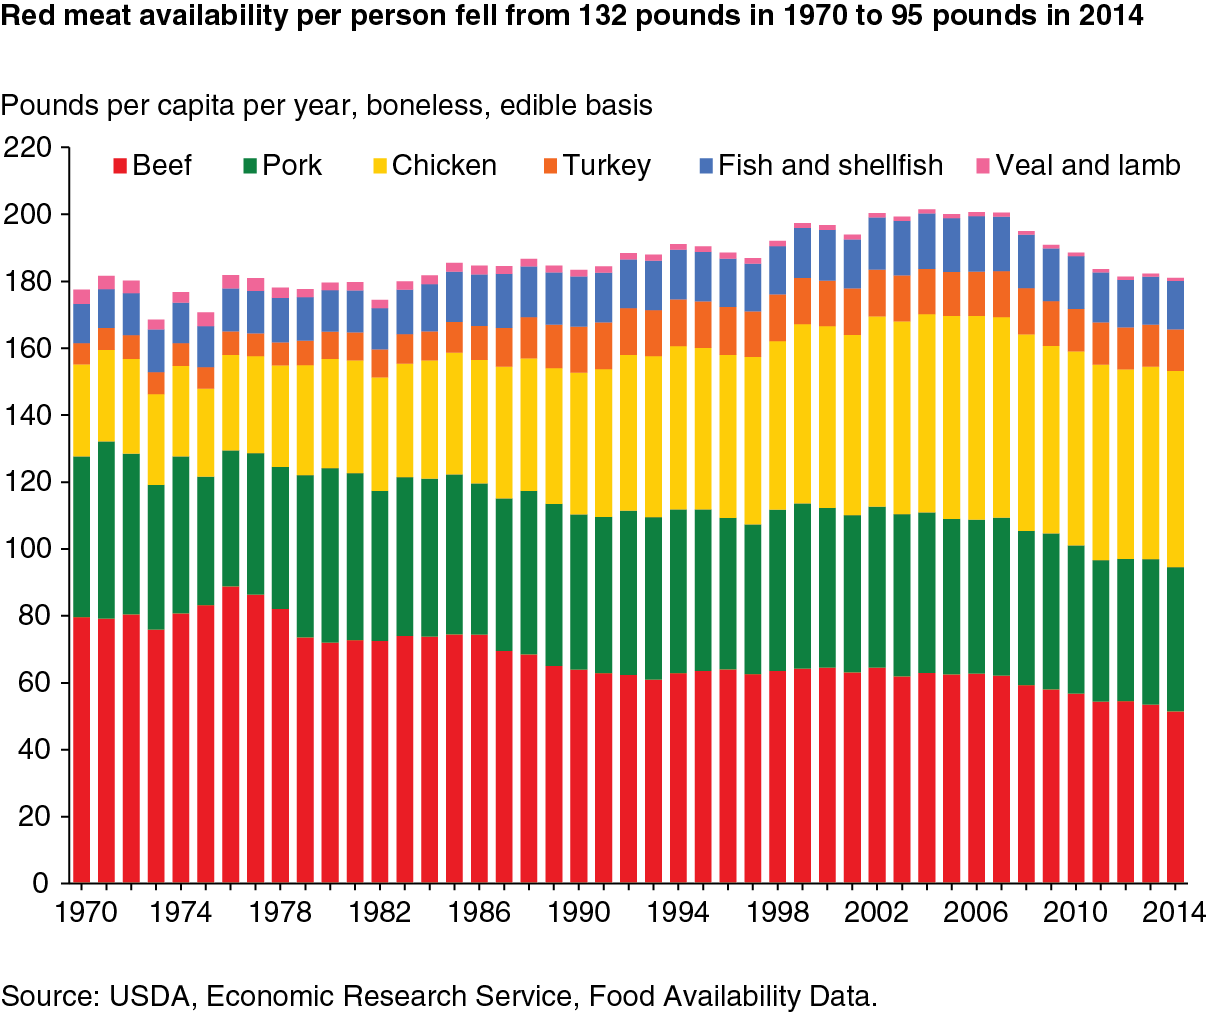 Usda ers us per capita availability of red meat poultry and download higher resolution chart 1207 pixels by 1012 150 dpi nvjuhfo Gallery